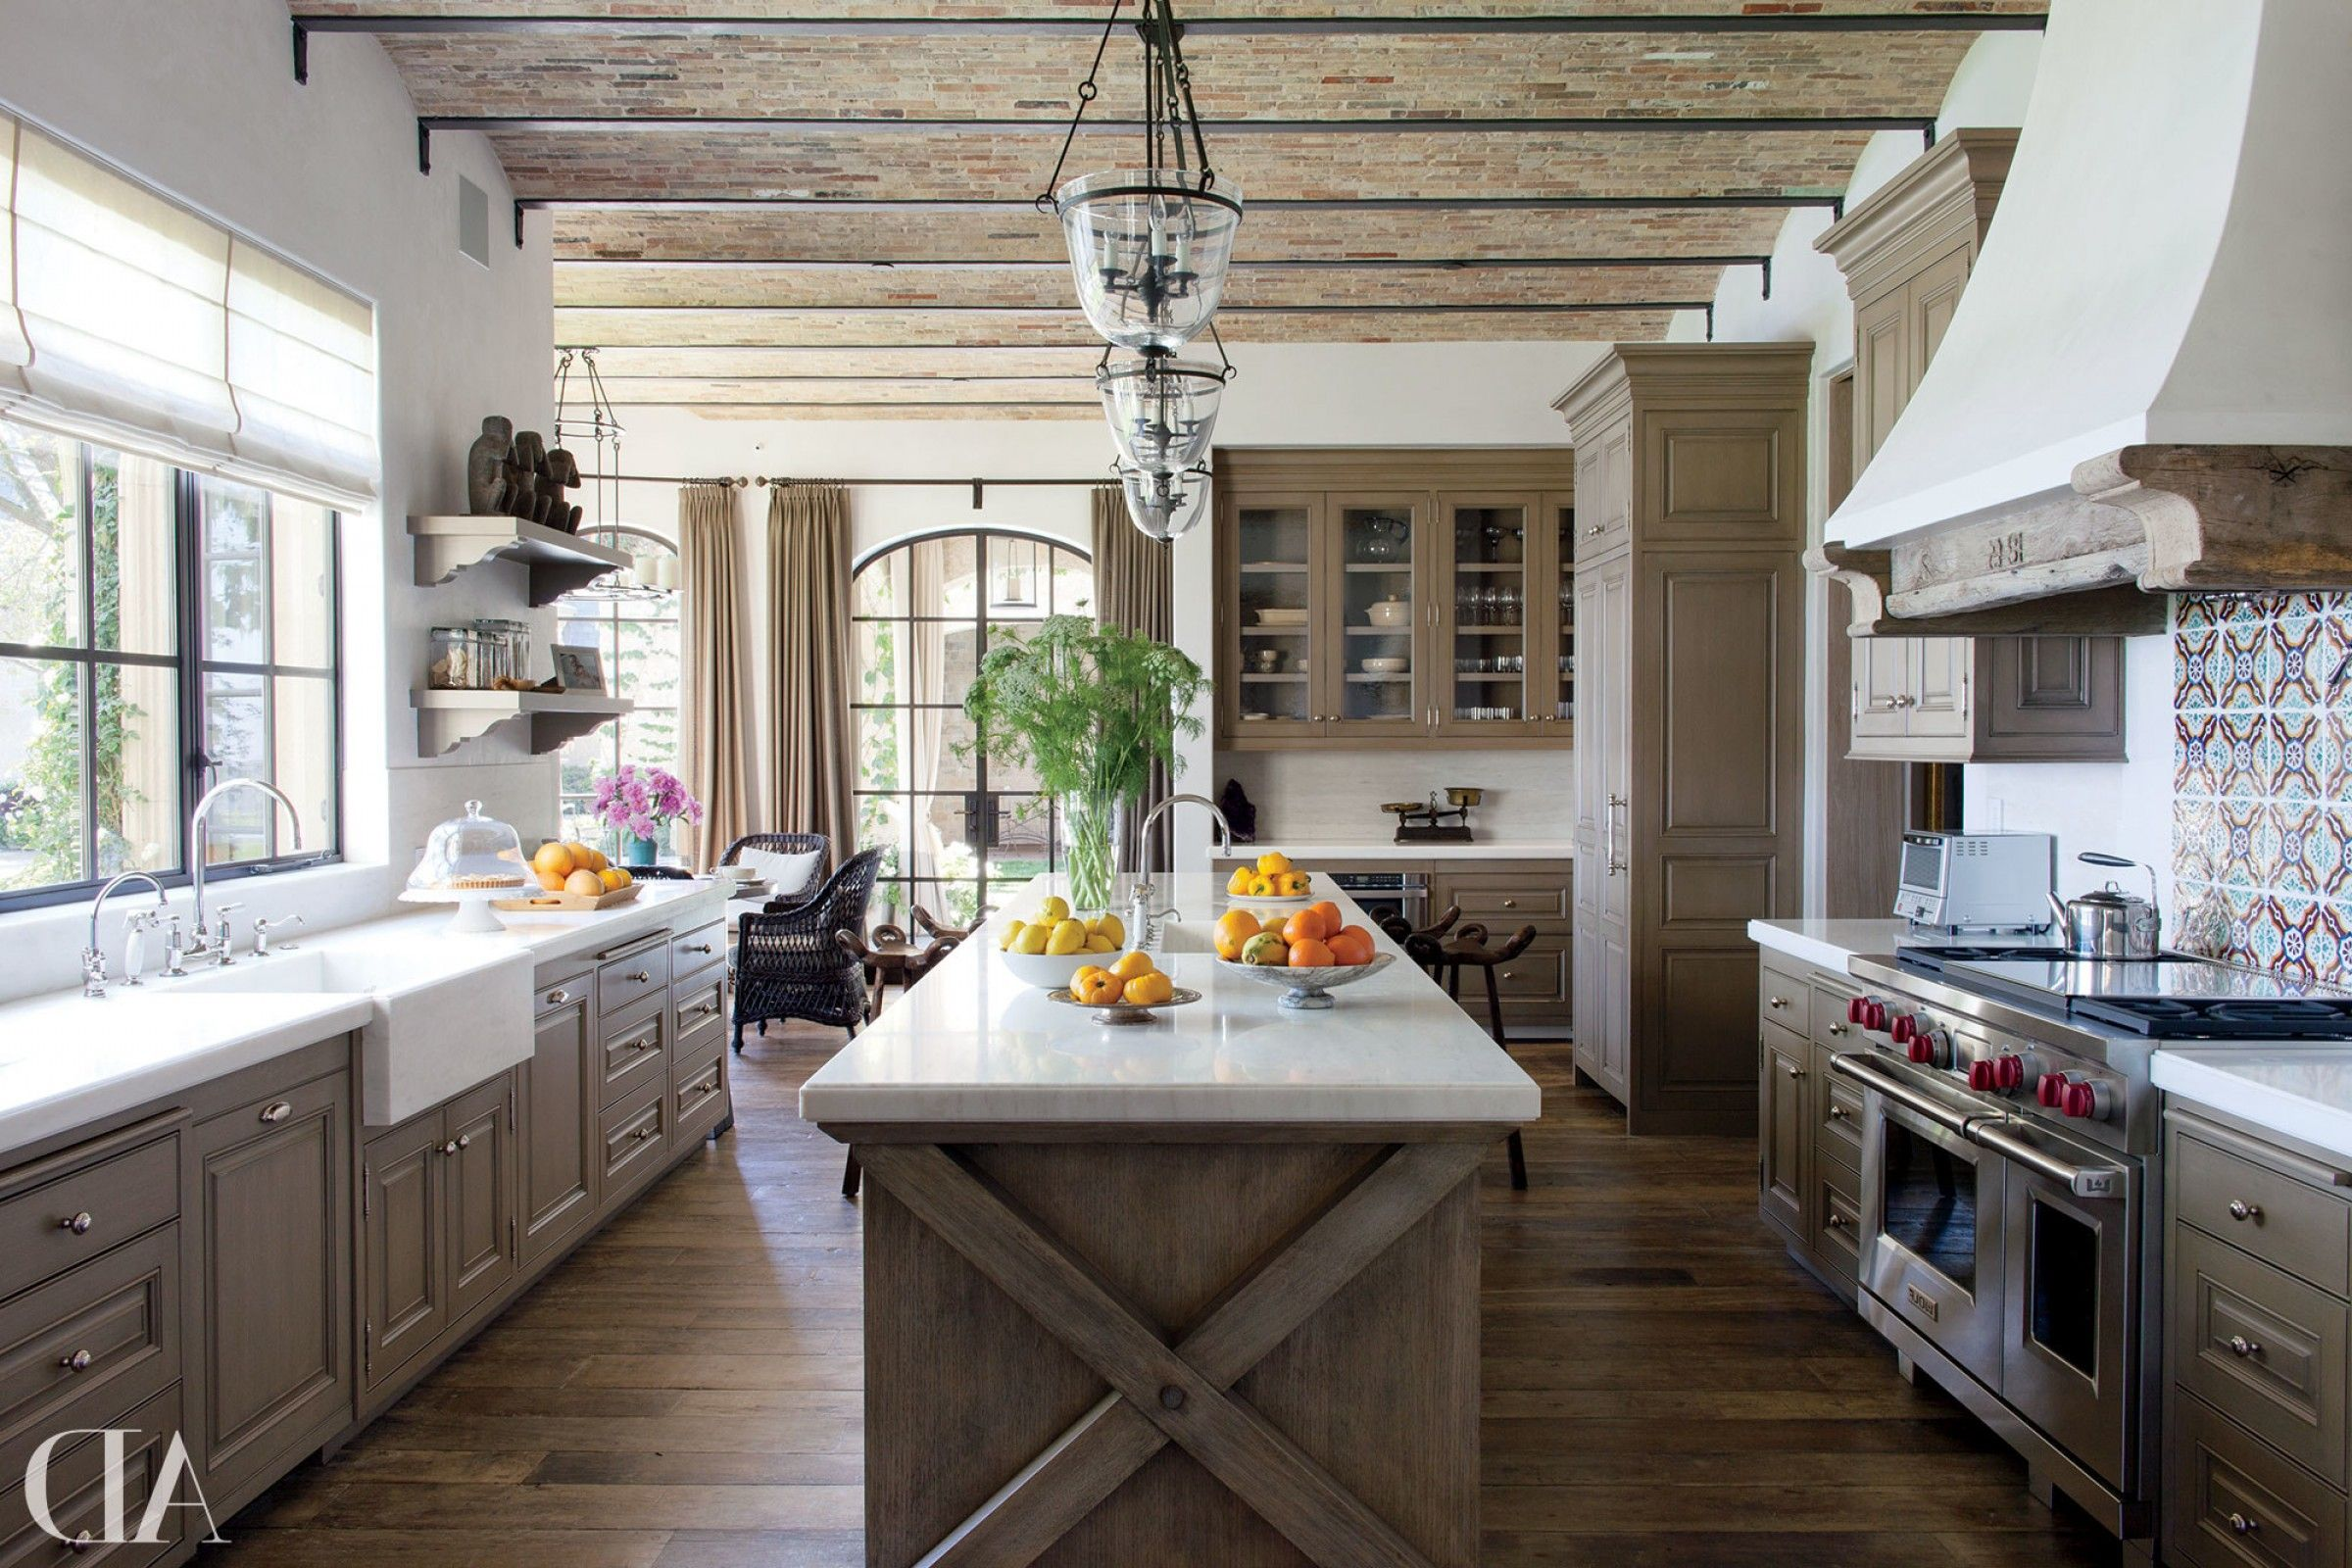 Rustic Modern Farmhouse Kitchens: Elegant Farmhouse